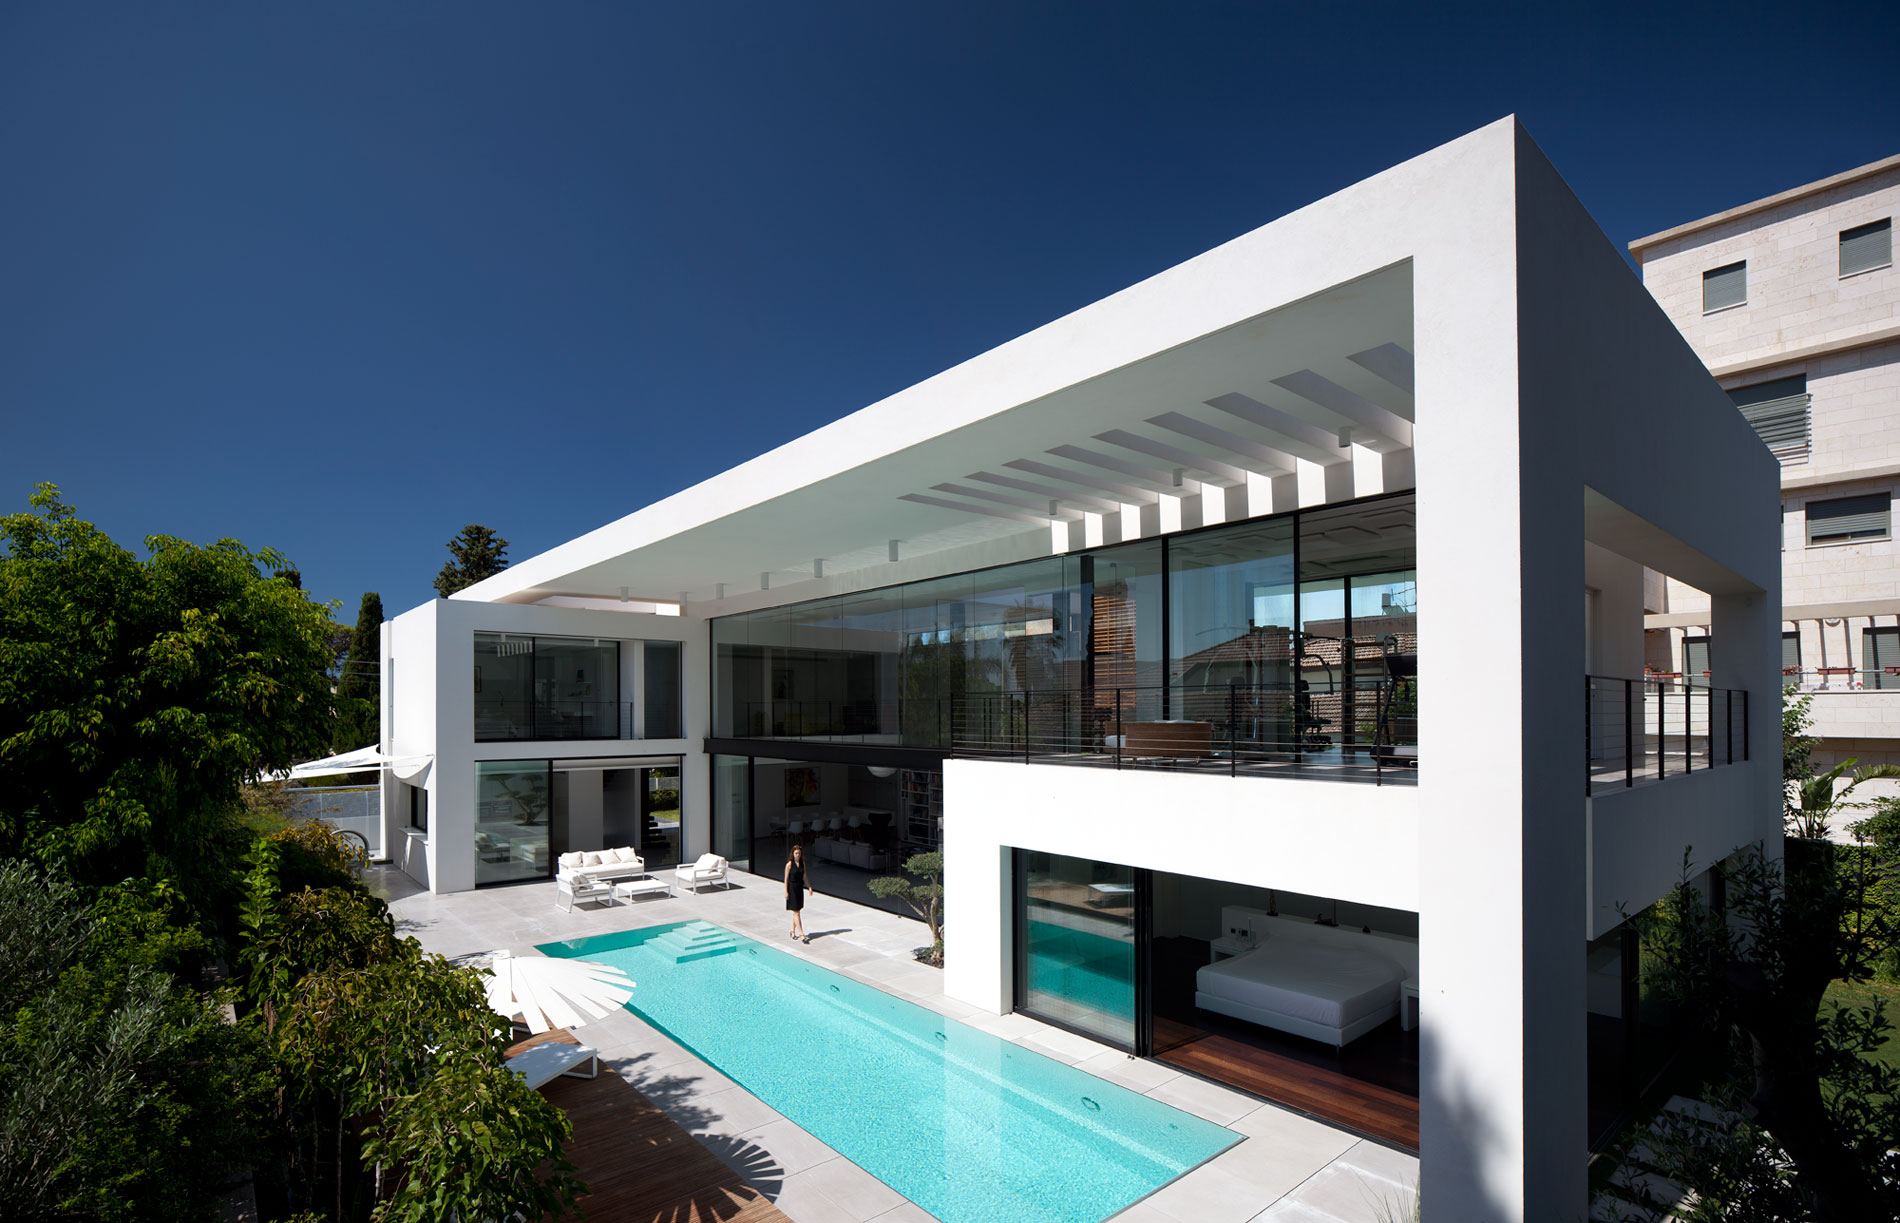 Bauhaus on the Carmel by Pitsou Kedem Architects